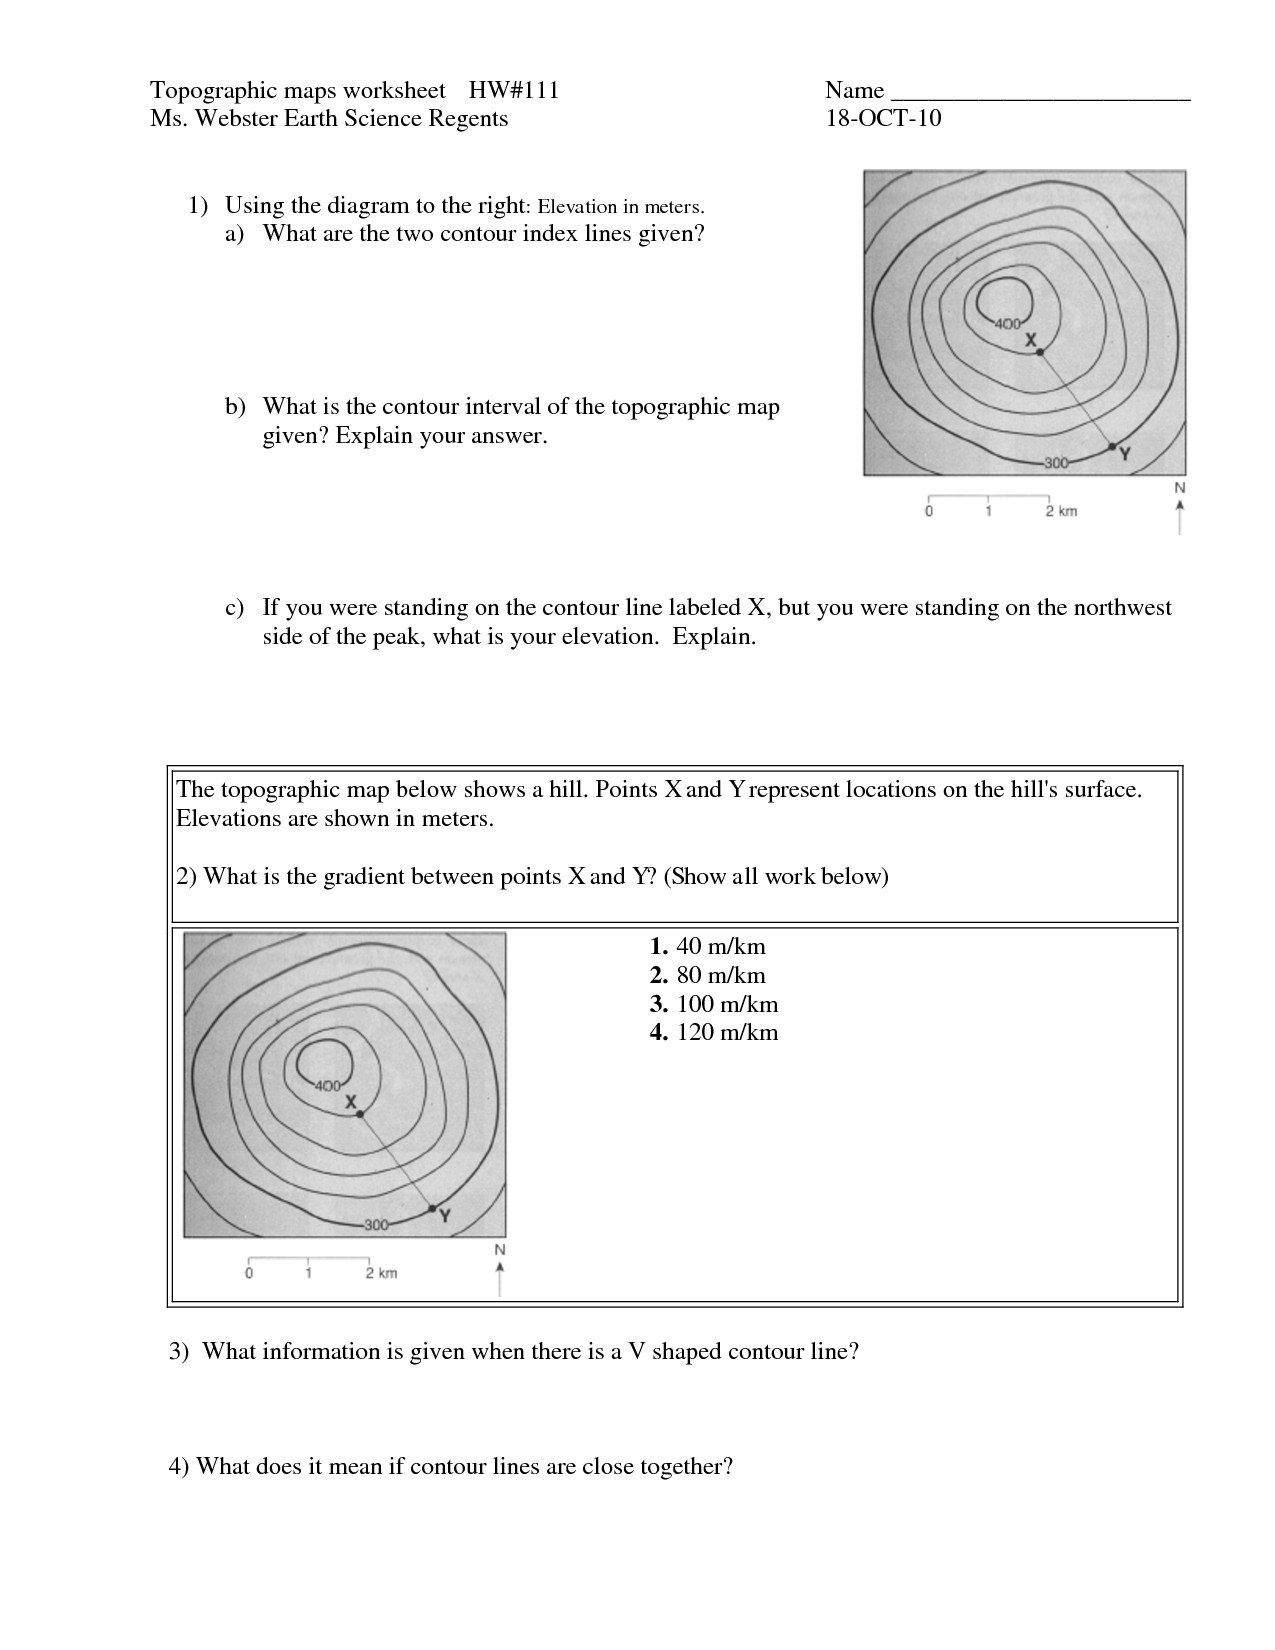 Topographic Map Worksheet 91 Images In Collection Page 2